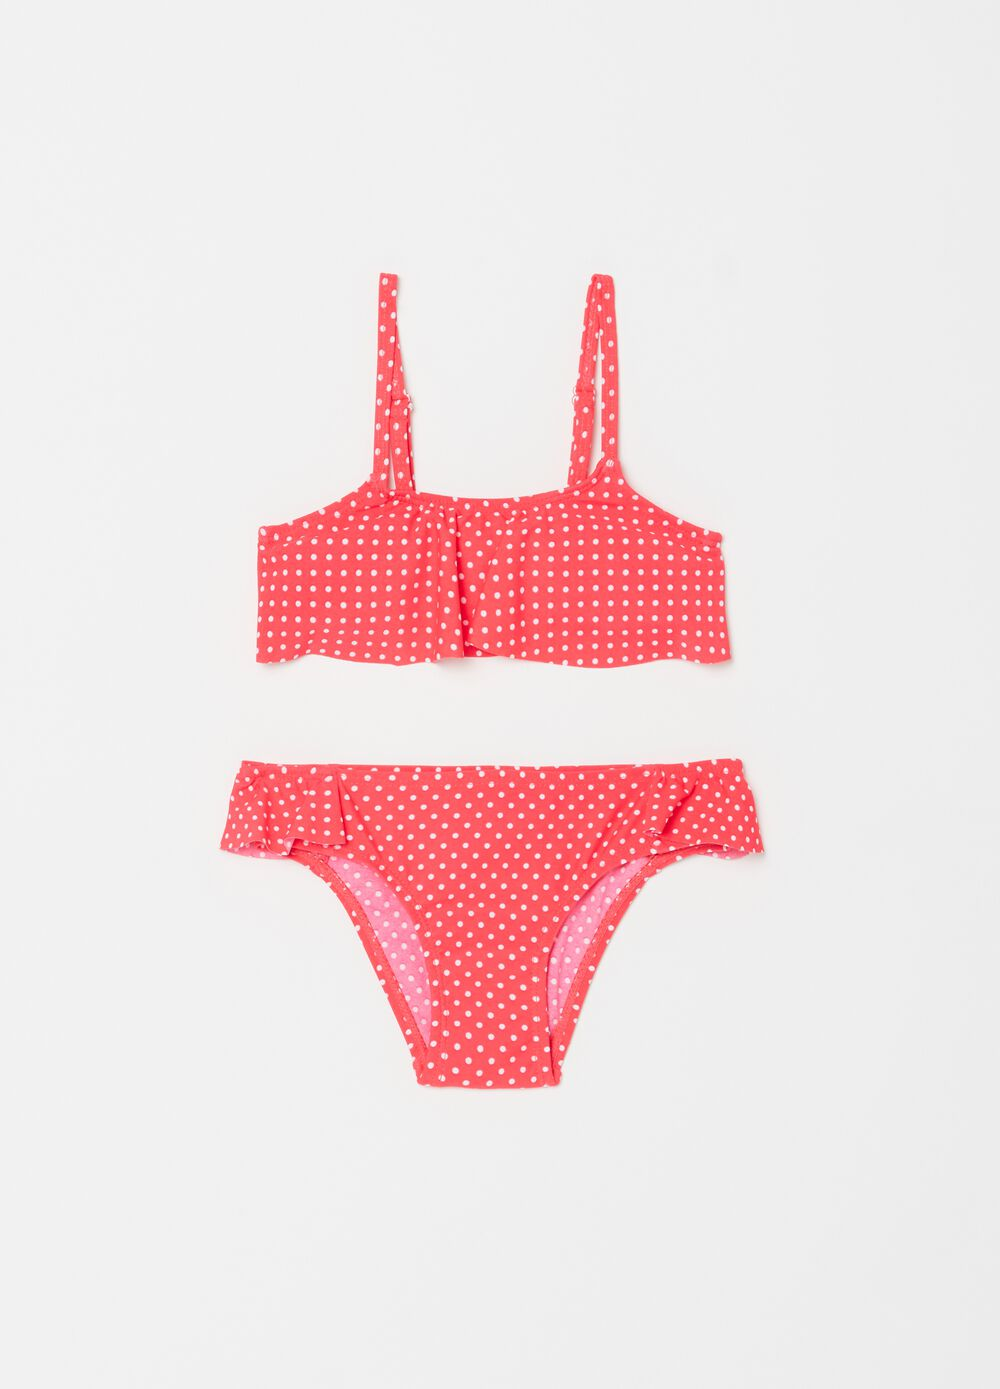 Stretch bikini with bandeau top and briefs with polka dot pattern